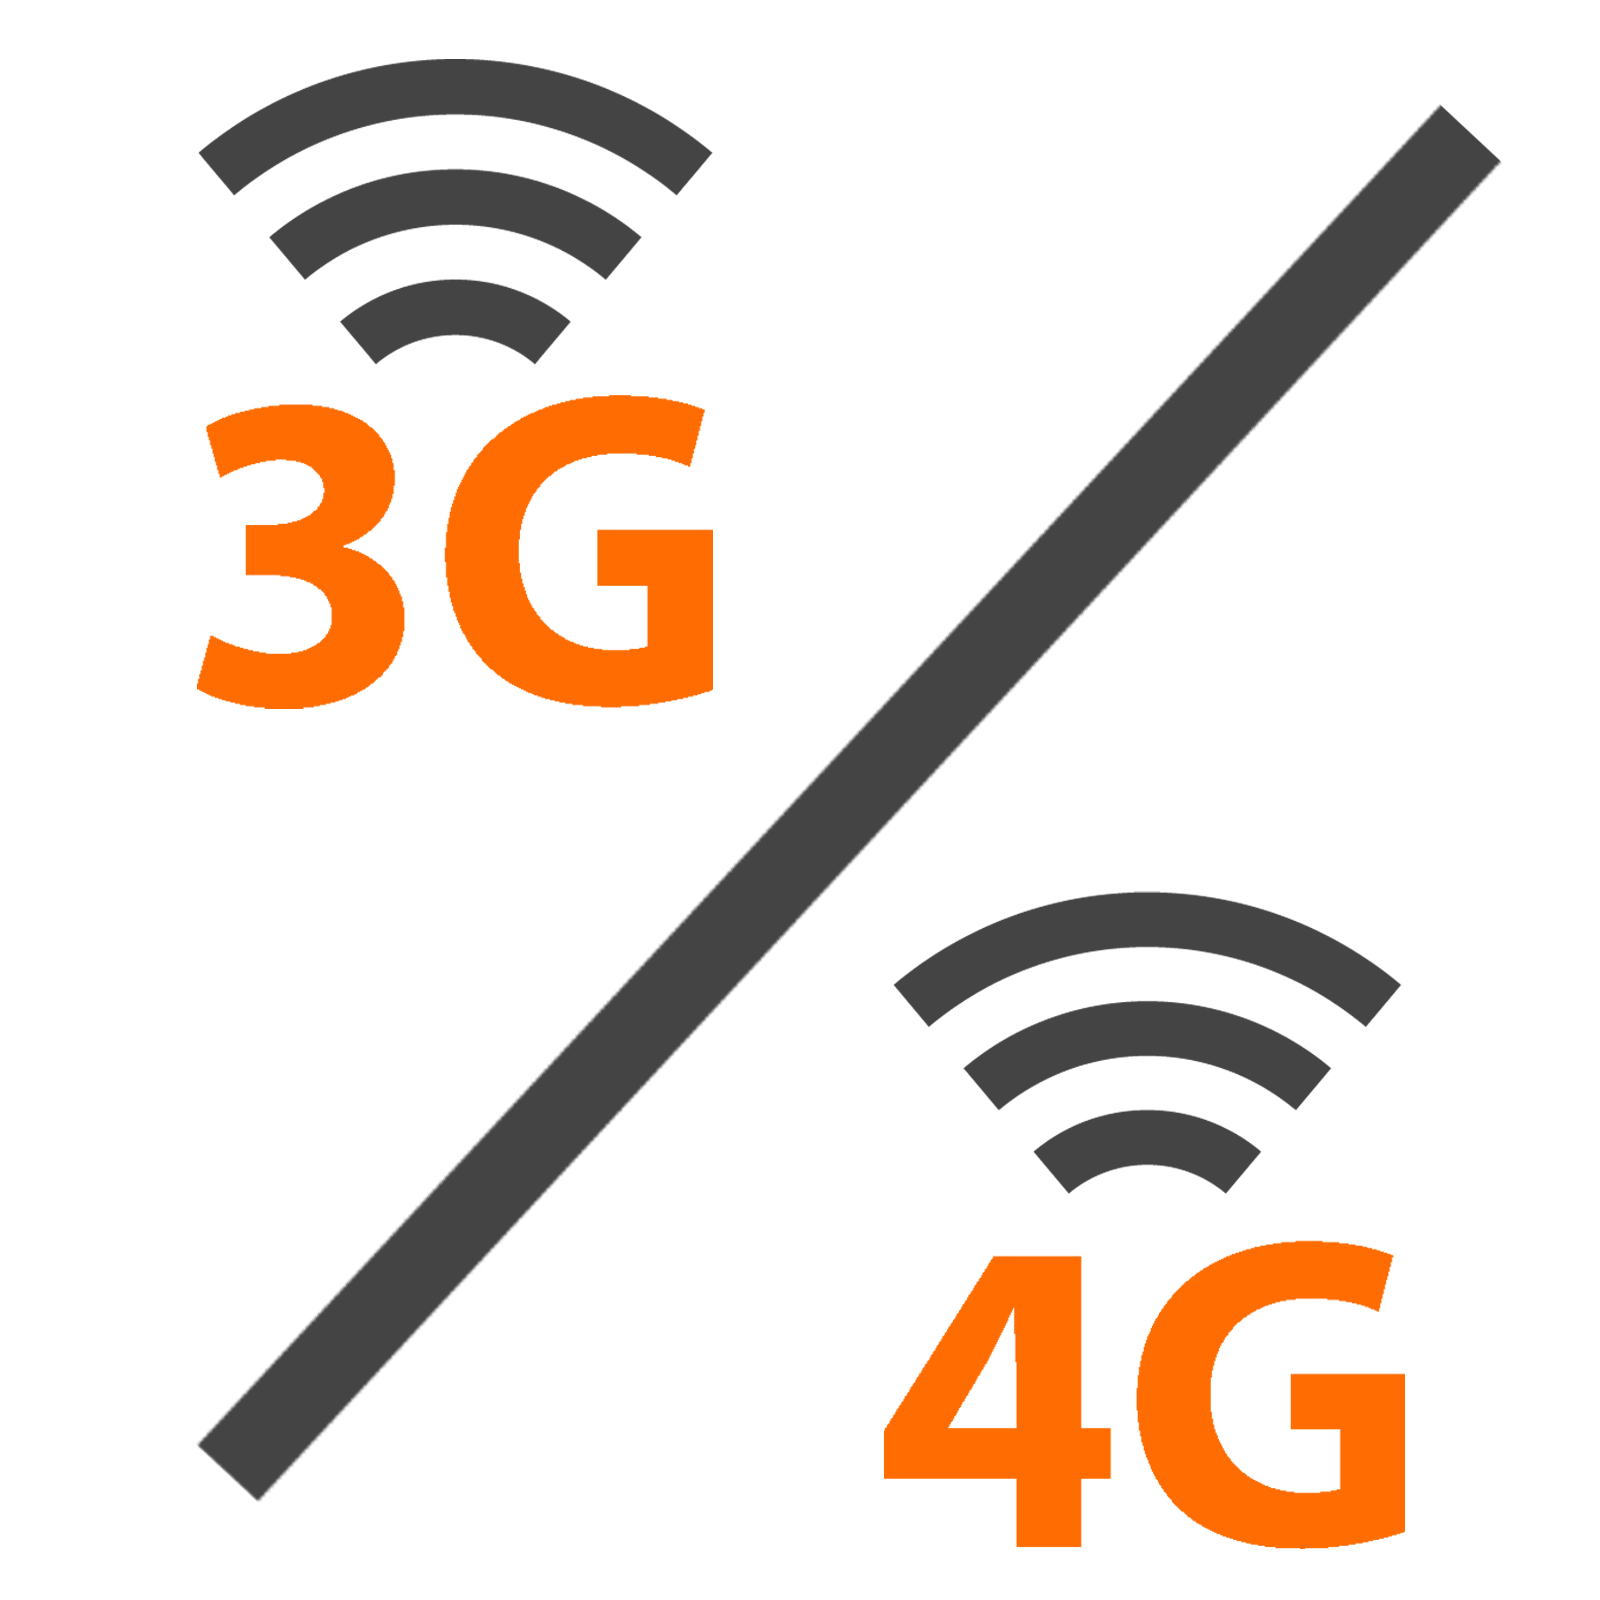 https://i1.wp.com/haultech.co.uk/wp-content/uploads/2021/03/HaulTechs-Connected-Camera-Solutions-Come-With-3G-4G-Connectivity-as-Standard.png?fit=1600%2C1600&ssl=1